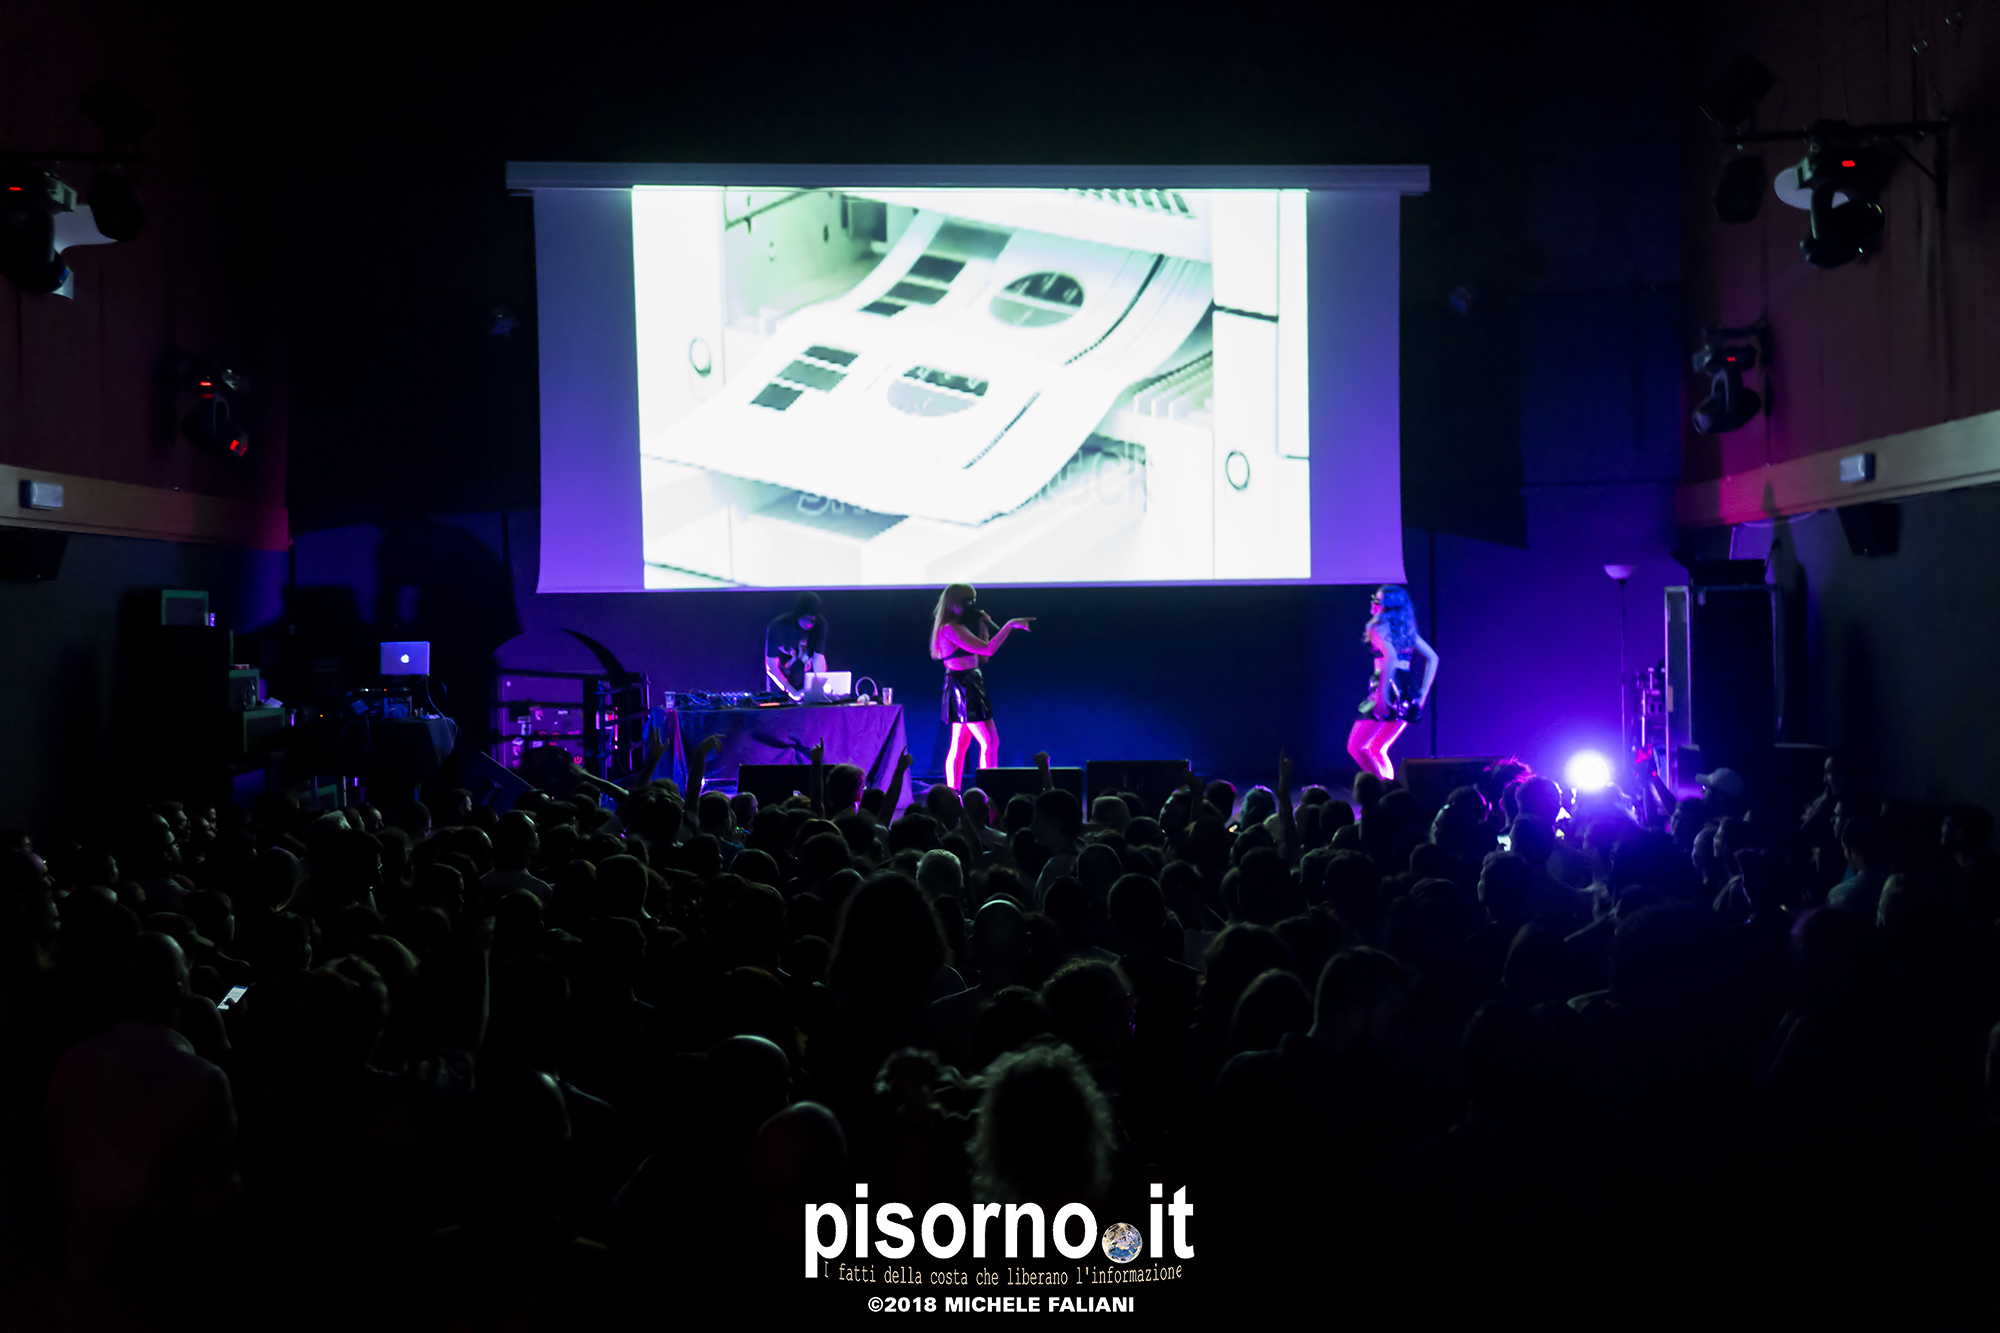 Myss Keta live @ Lumiere (Pisa, Italy), October 5th 2018